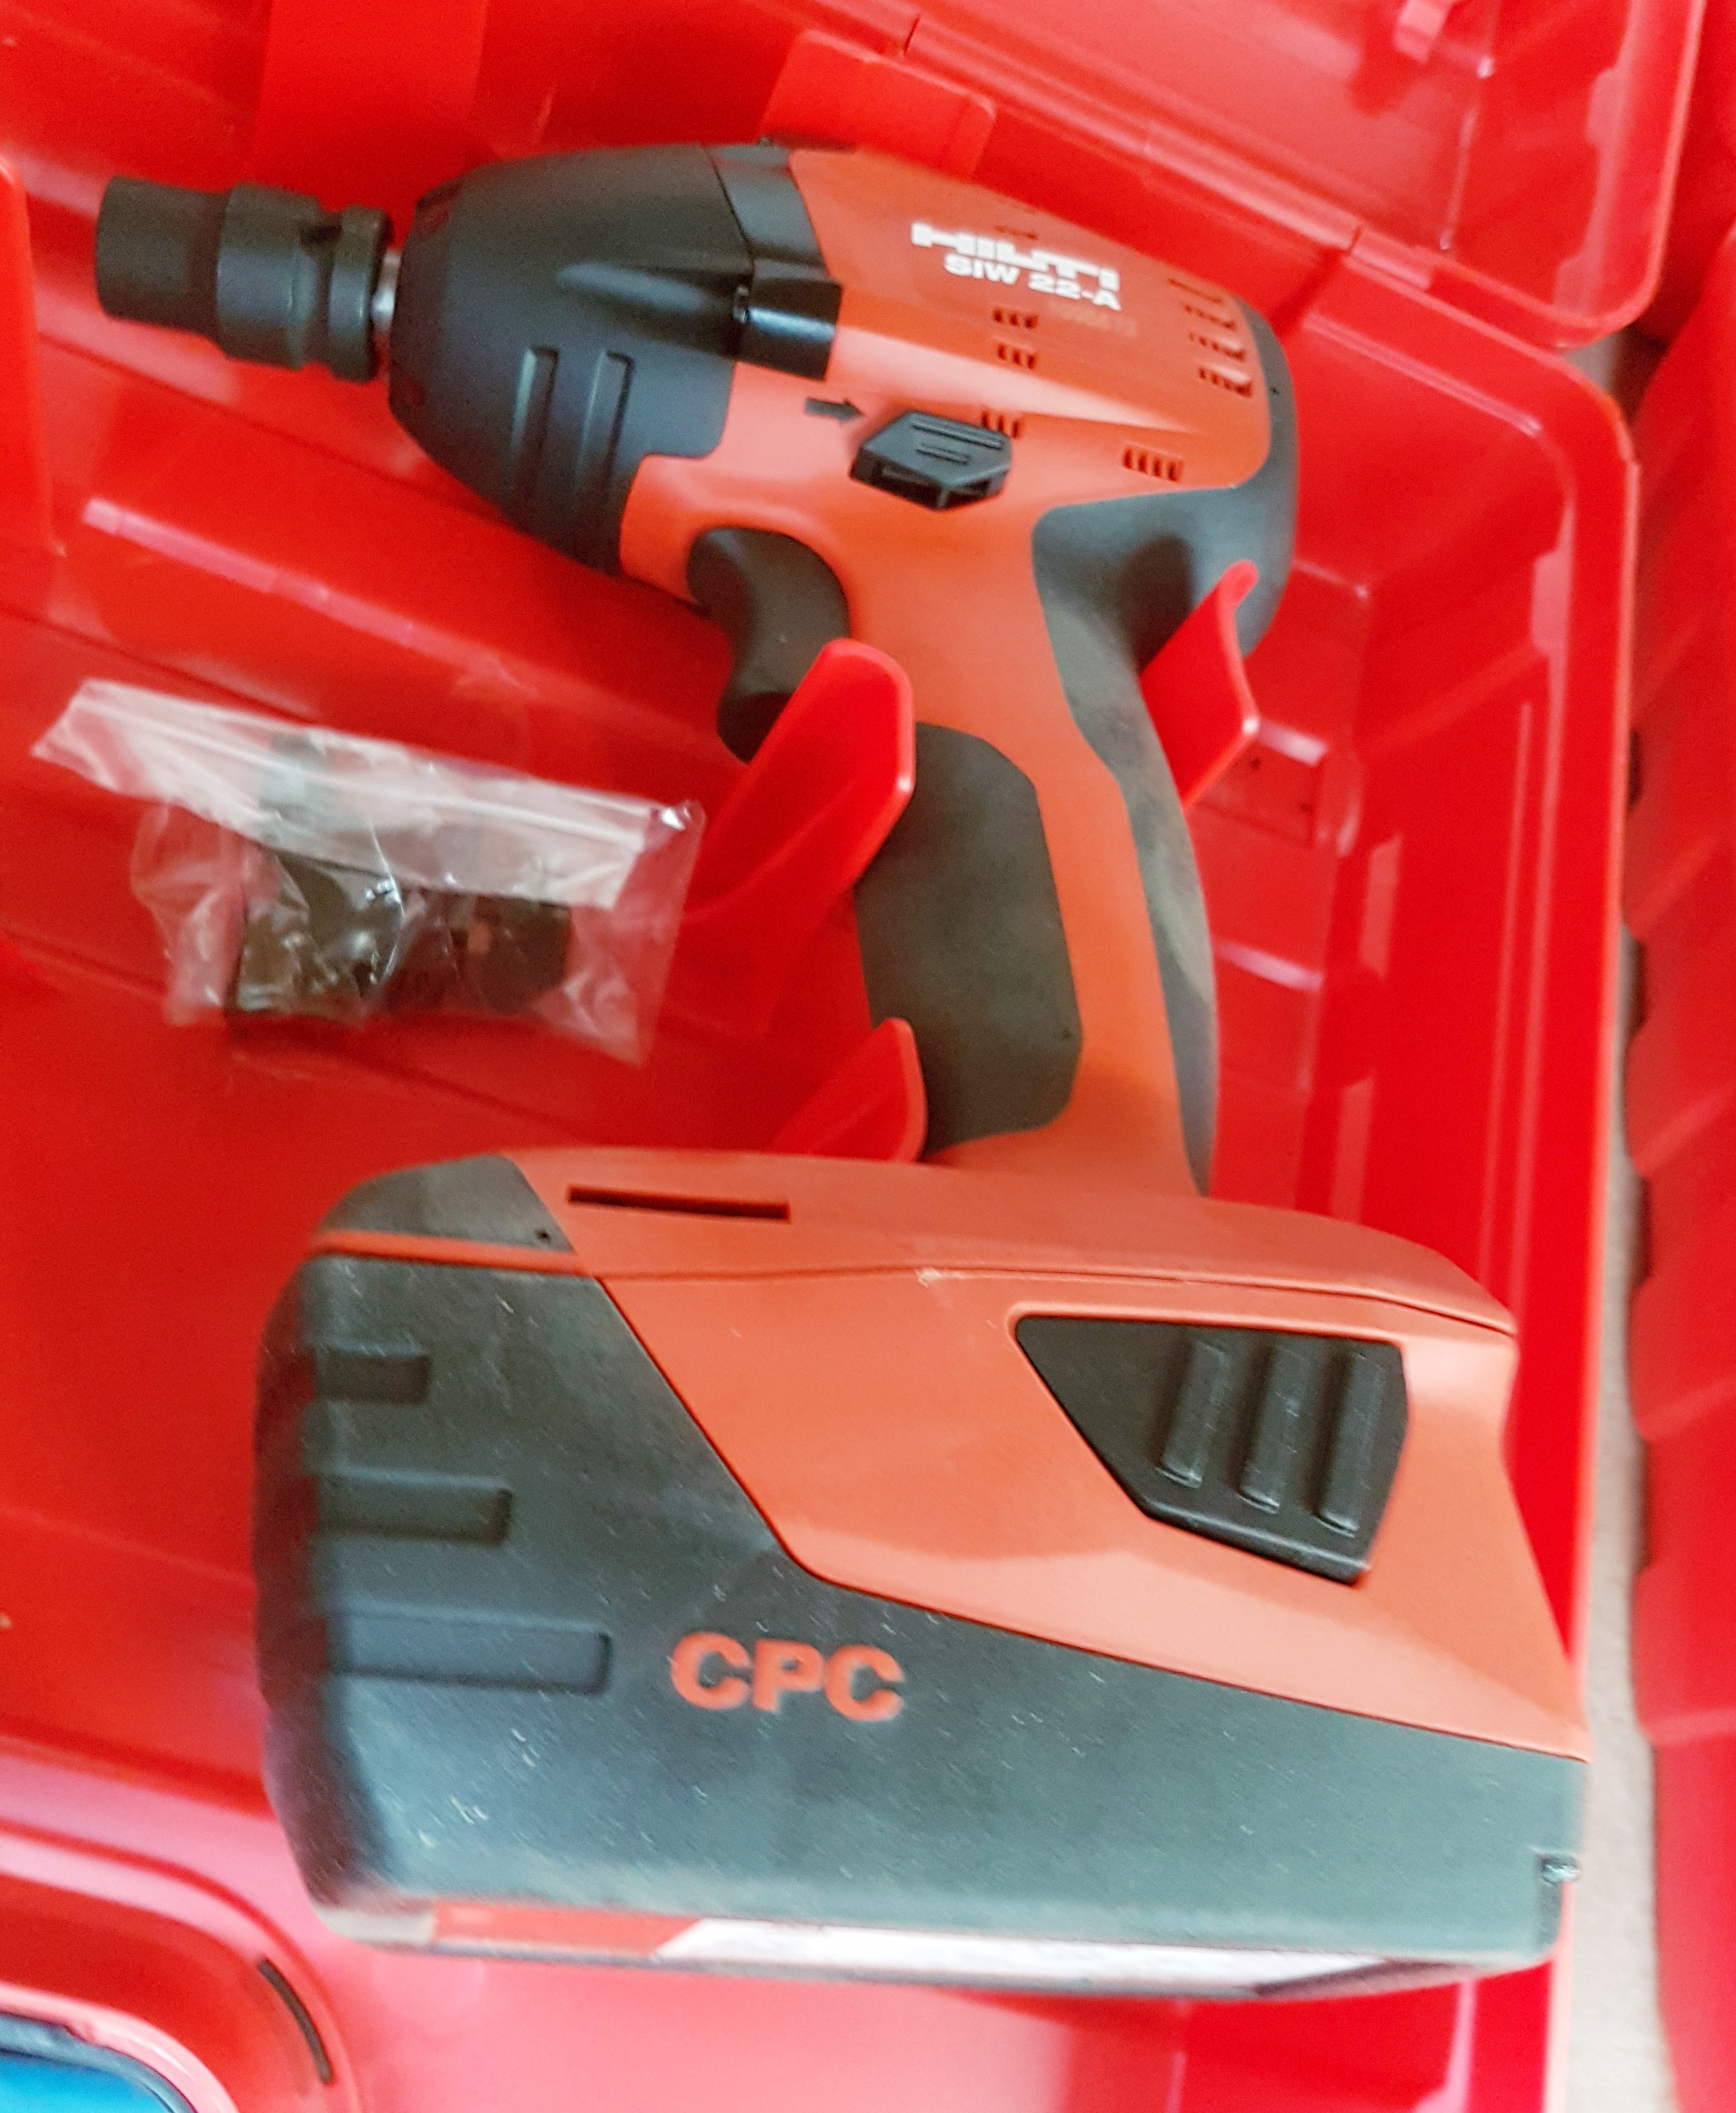 1 x hilti siw 22 a cordless impact driver with case and. Black Bedroom Furniture Sets. Home Design Ideas